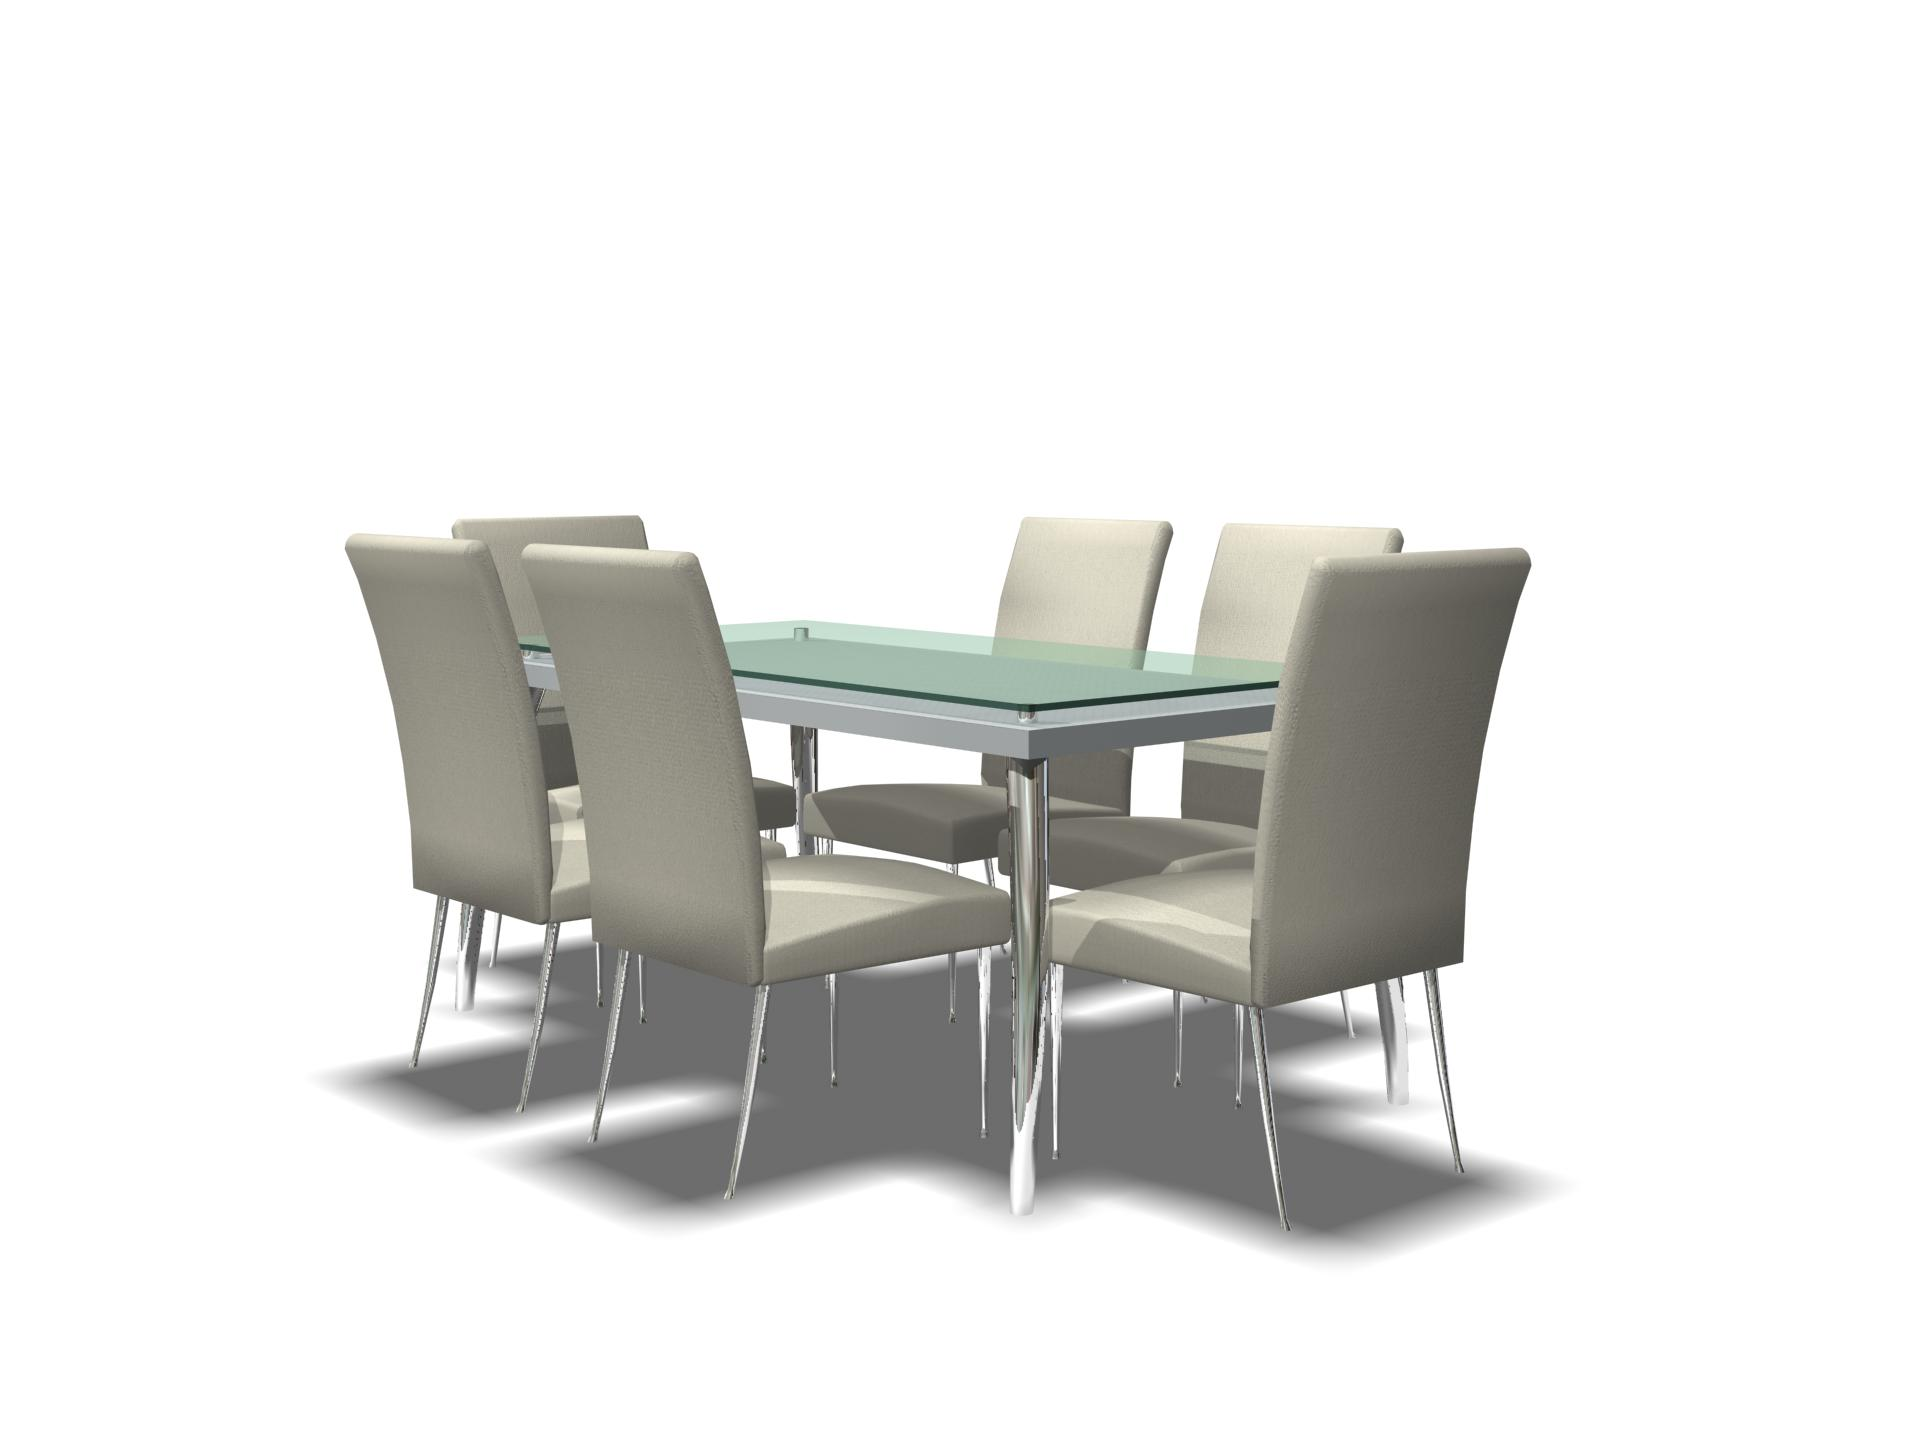 Furniture Table 009 Table 3d Model Download Free 3d